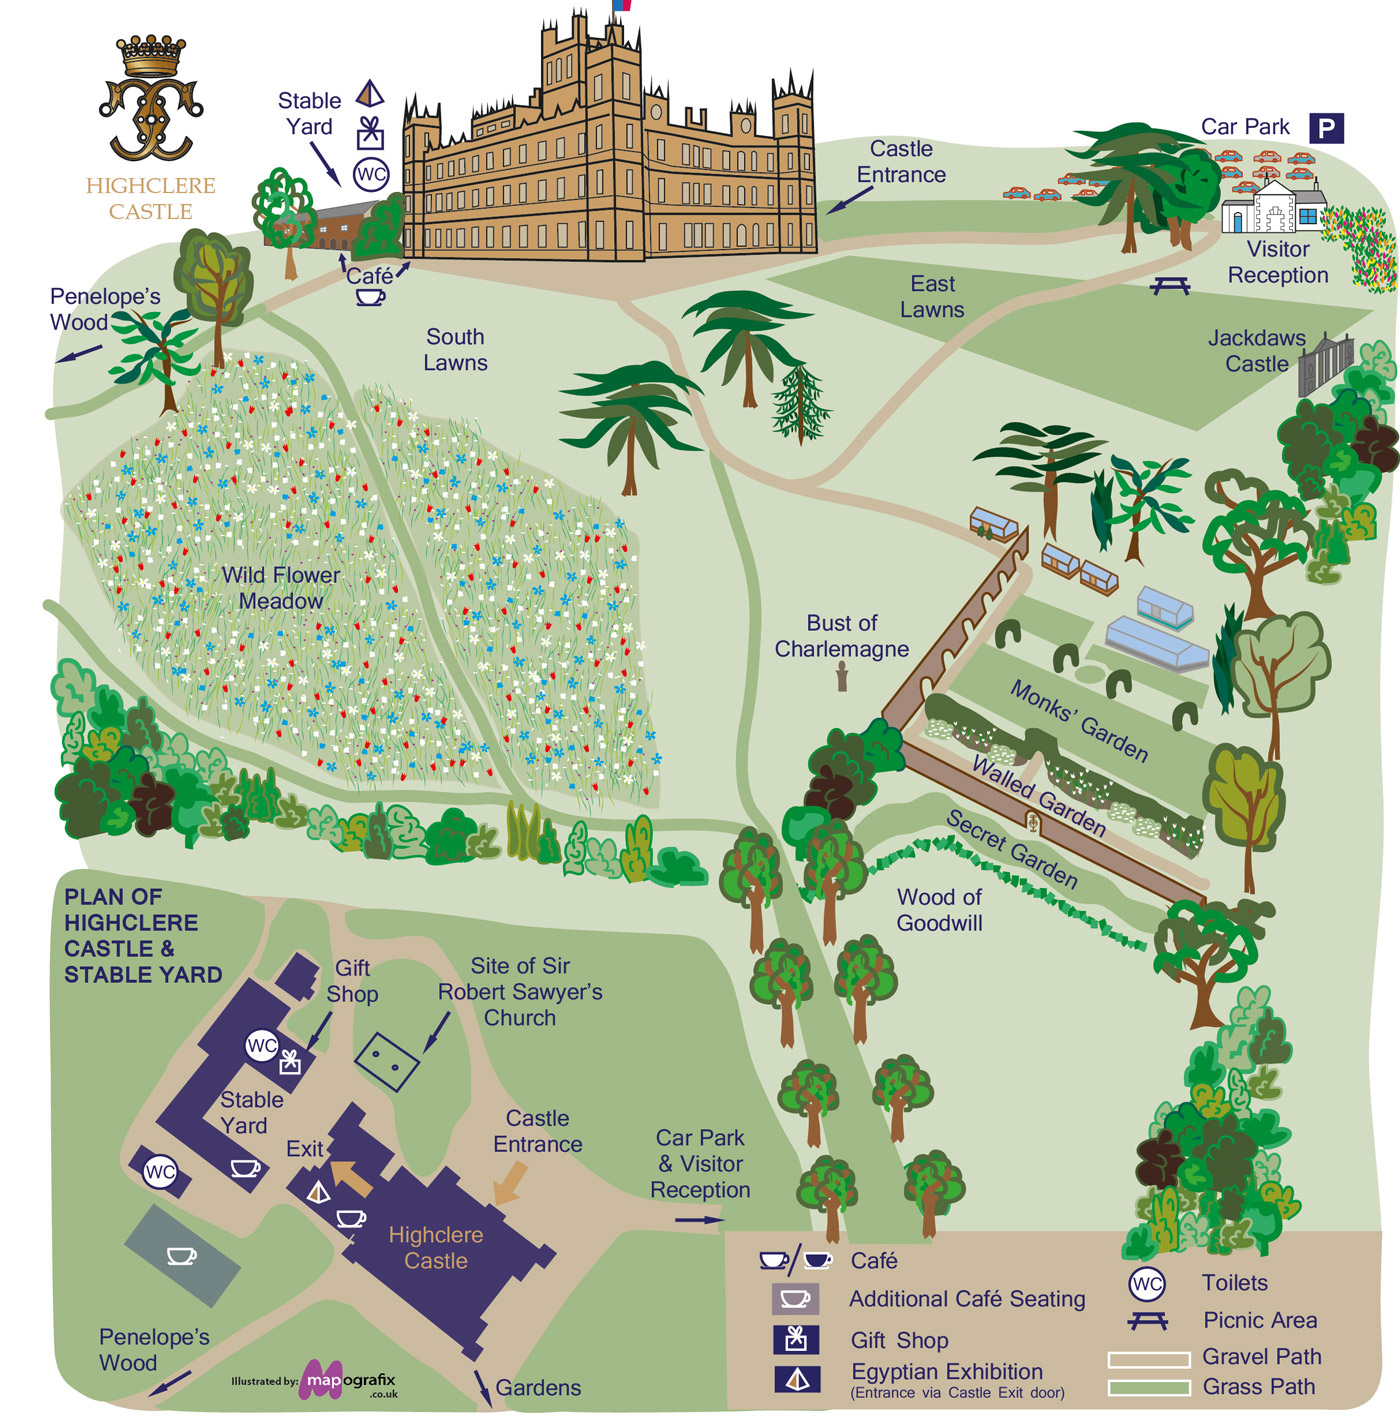 Planning your visit to Highclere Castle, Hampshire, Berkshire